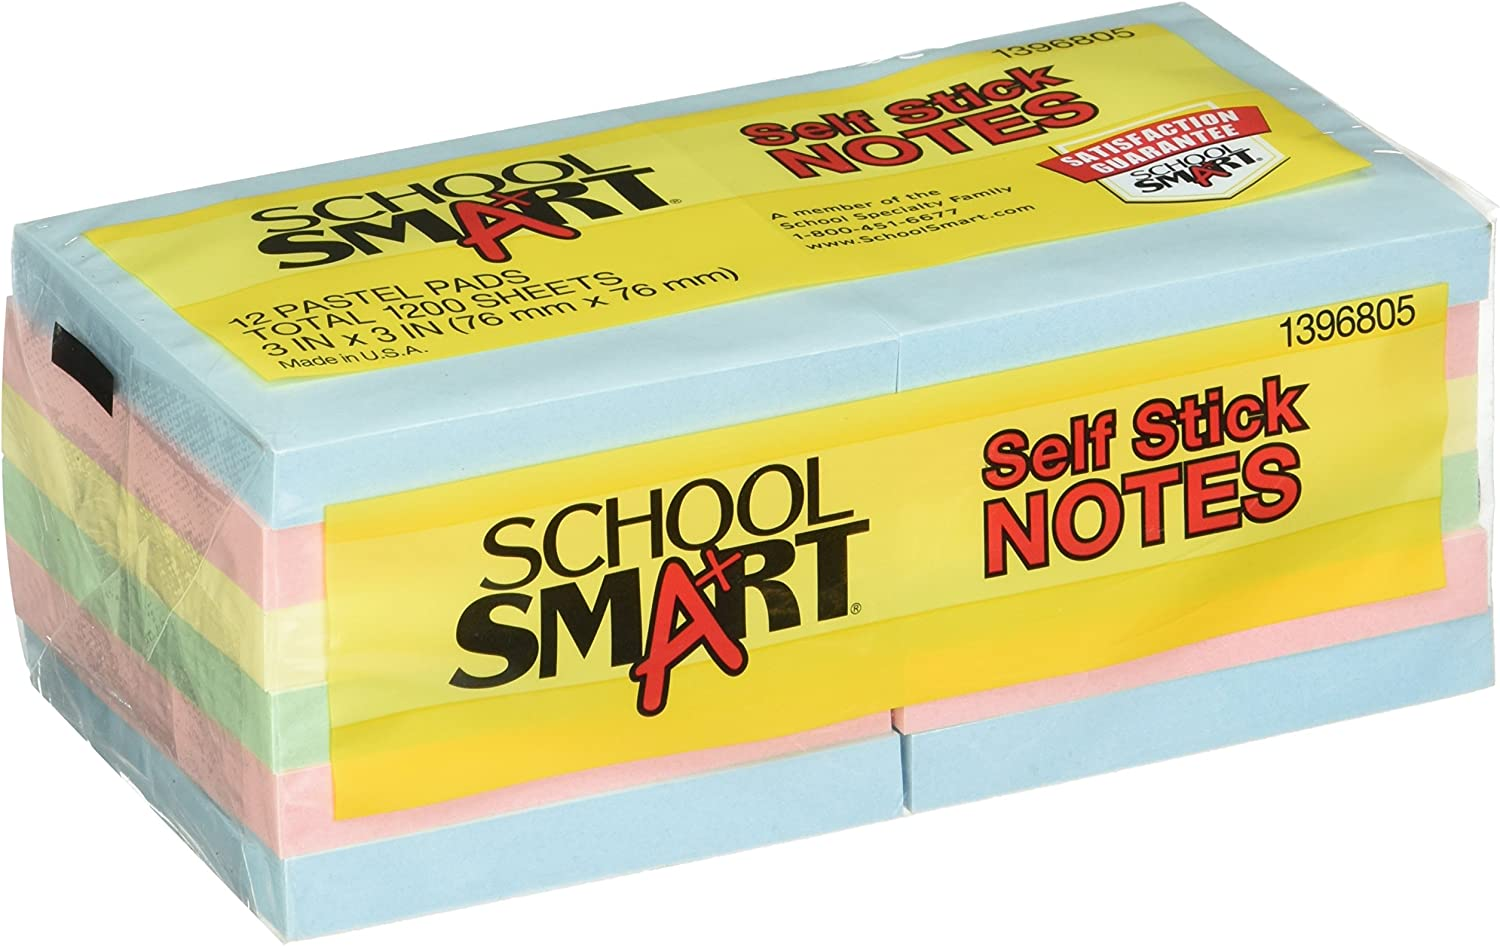 Assorted Colors School Smart Self-Stick Note 100 Sheets per Pad Pack of 12